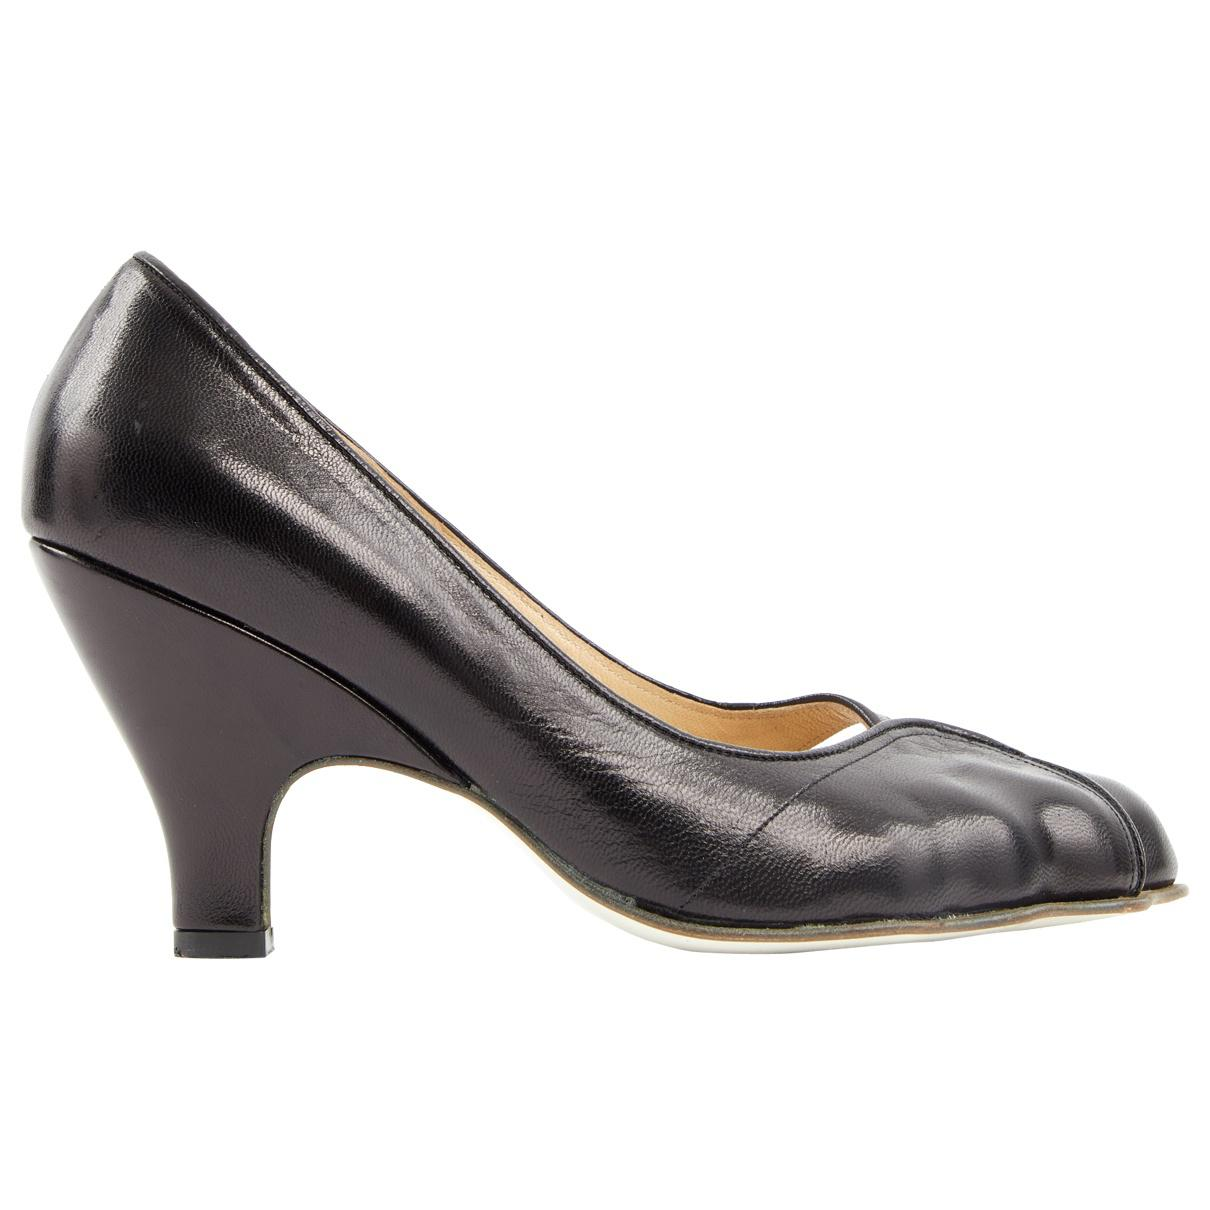 Pre-owned - Leather heels Vivienne Westwood Browse Sale Online rtCPKJ